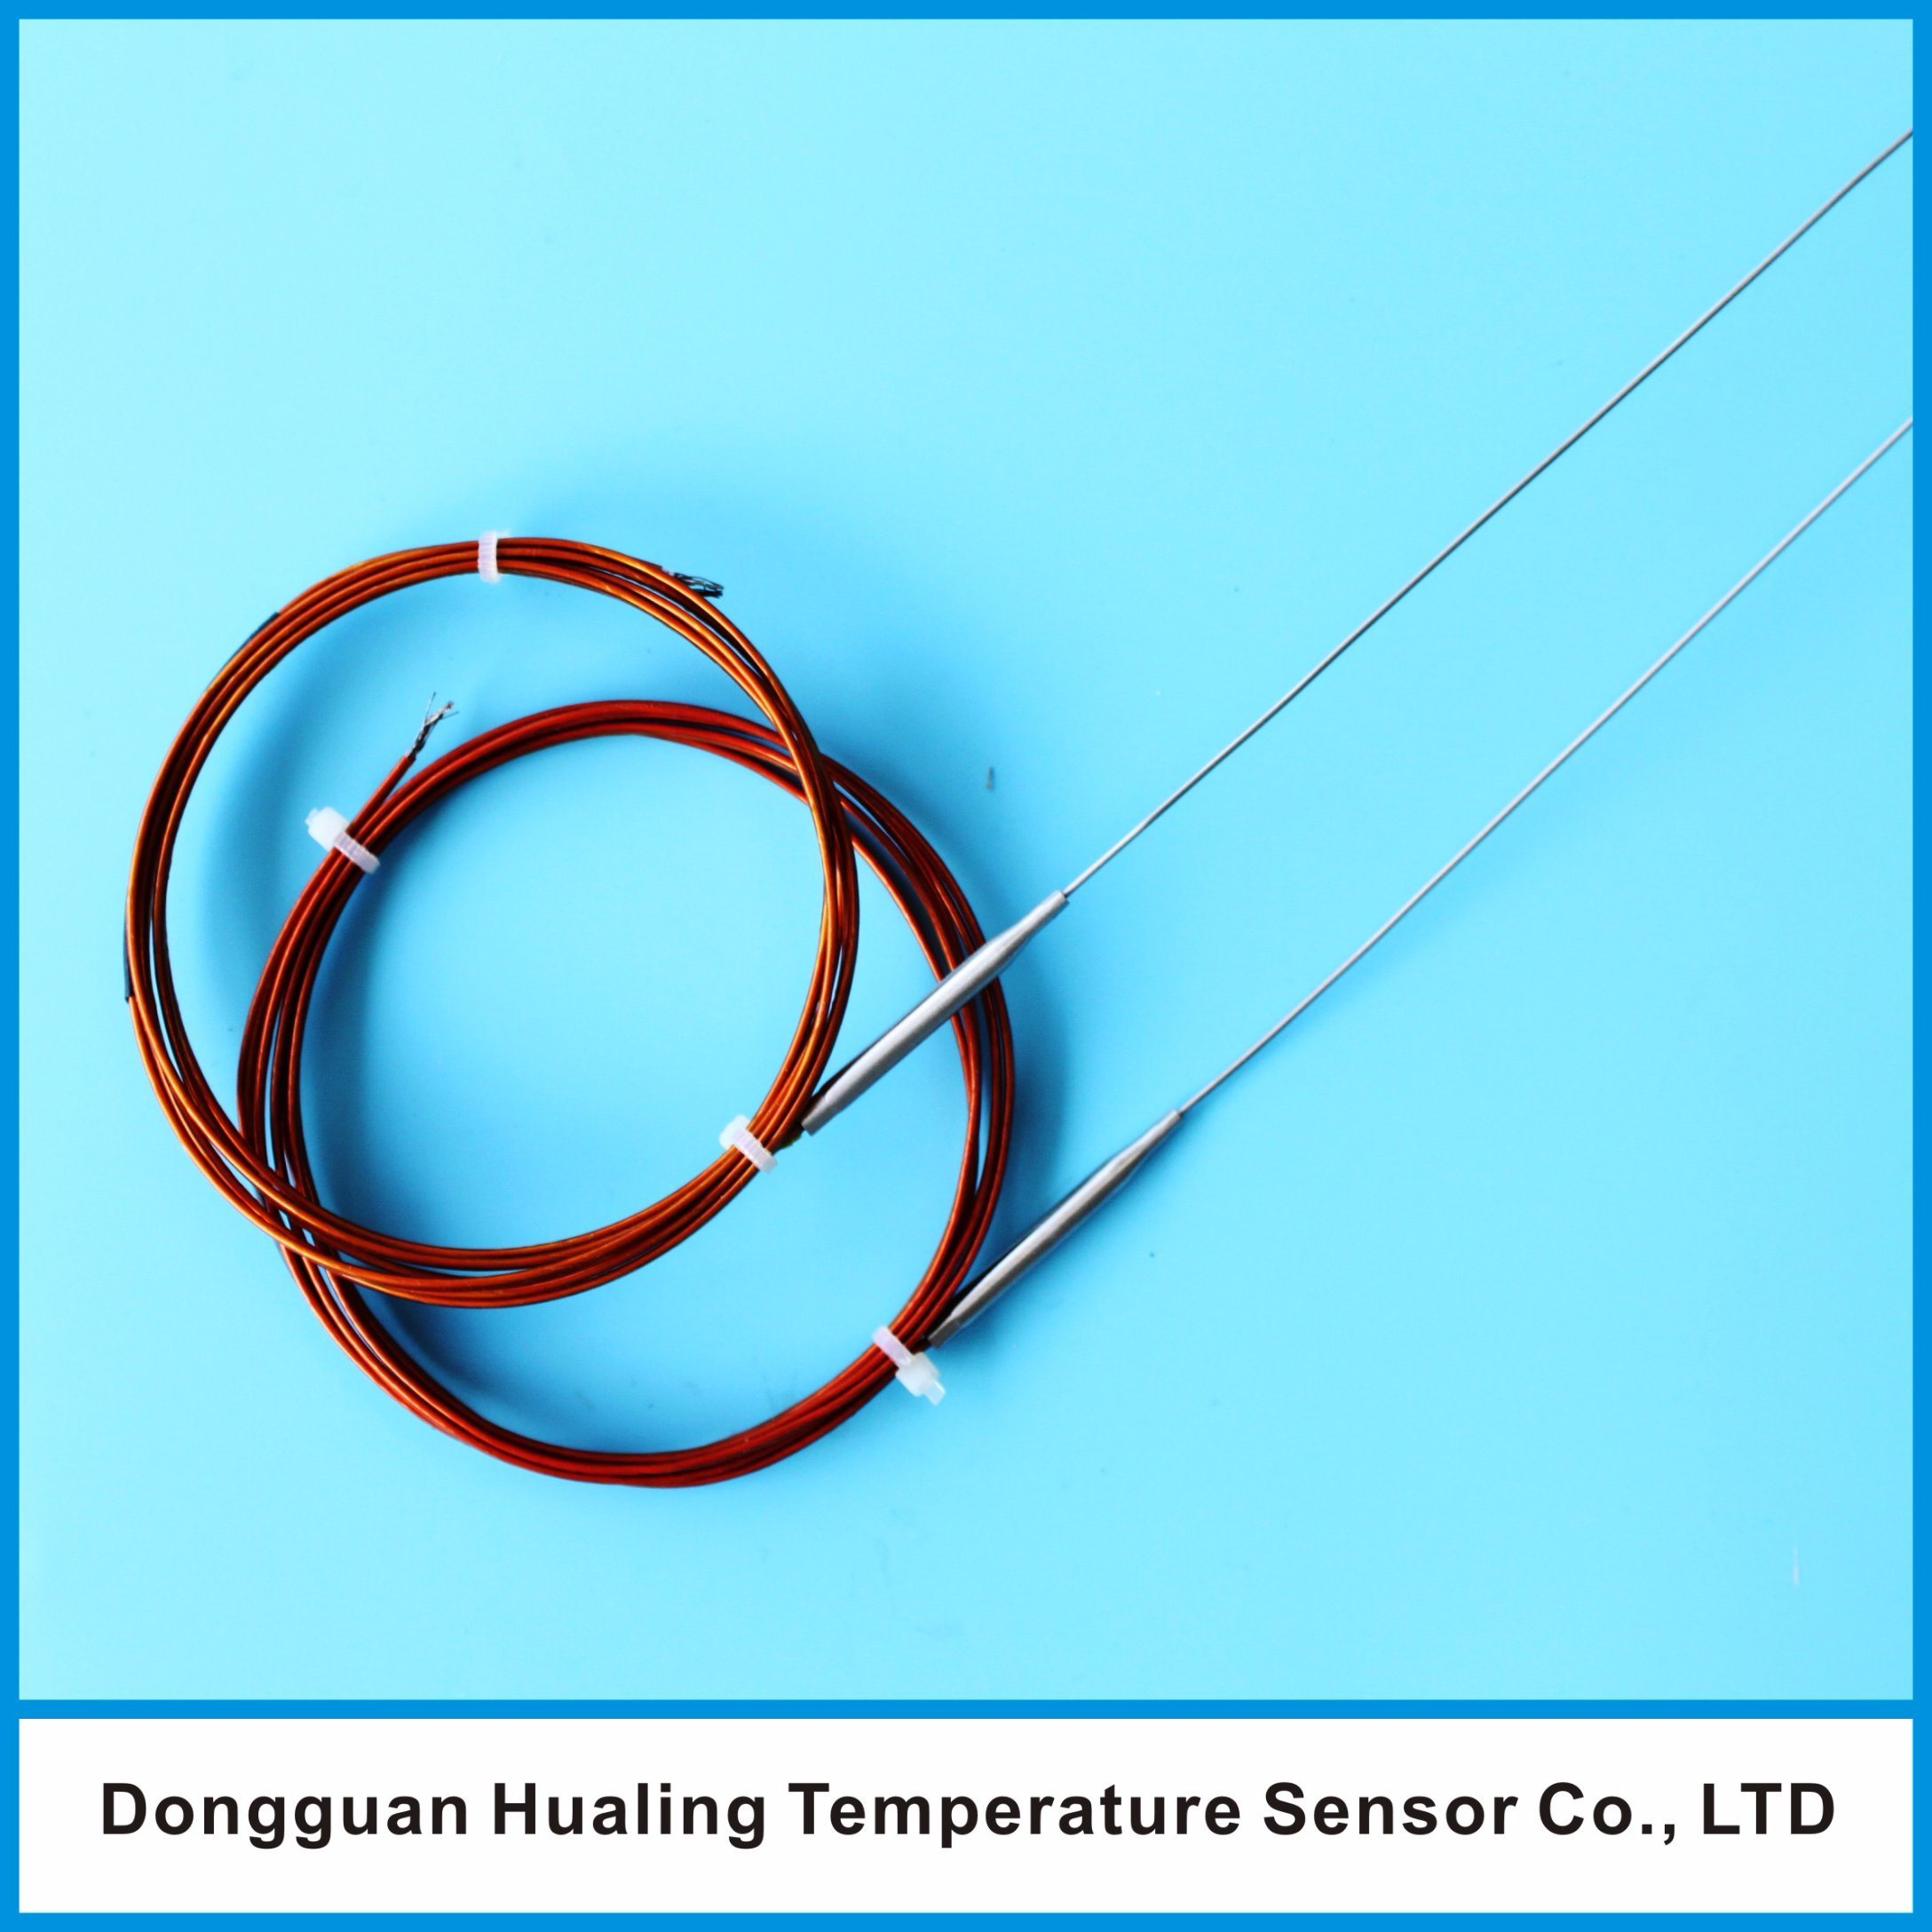 Mi Insulated Thermocouple Sensor